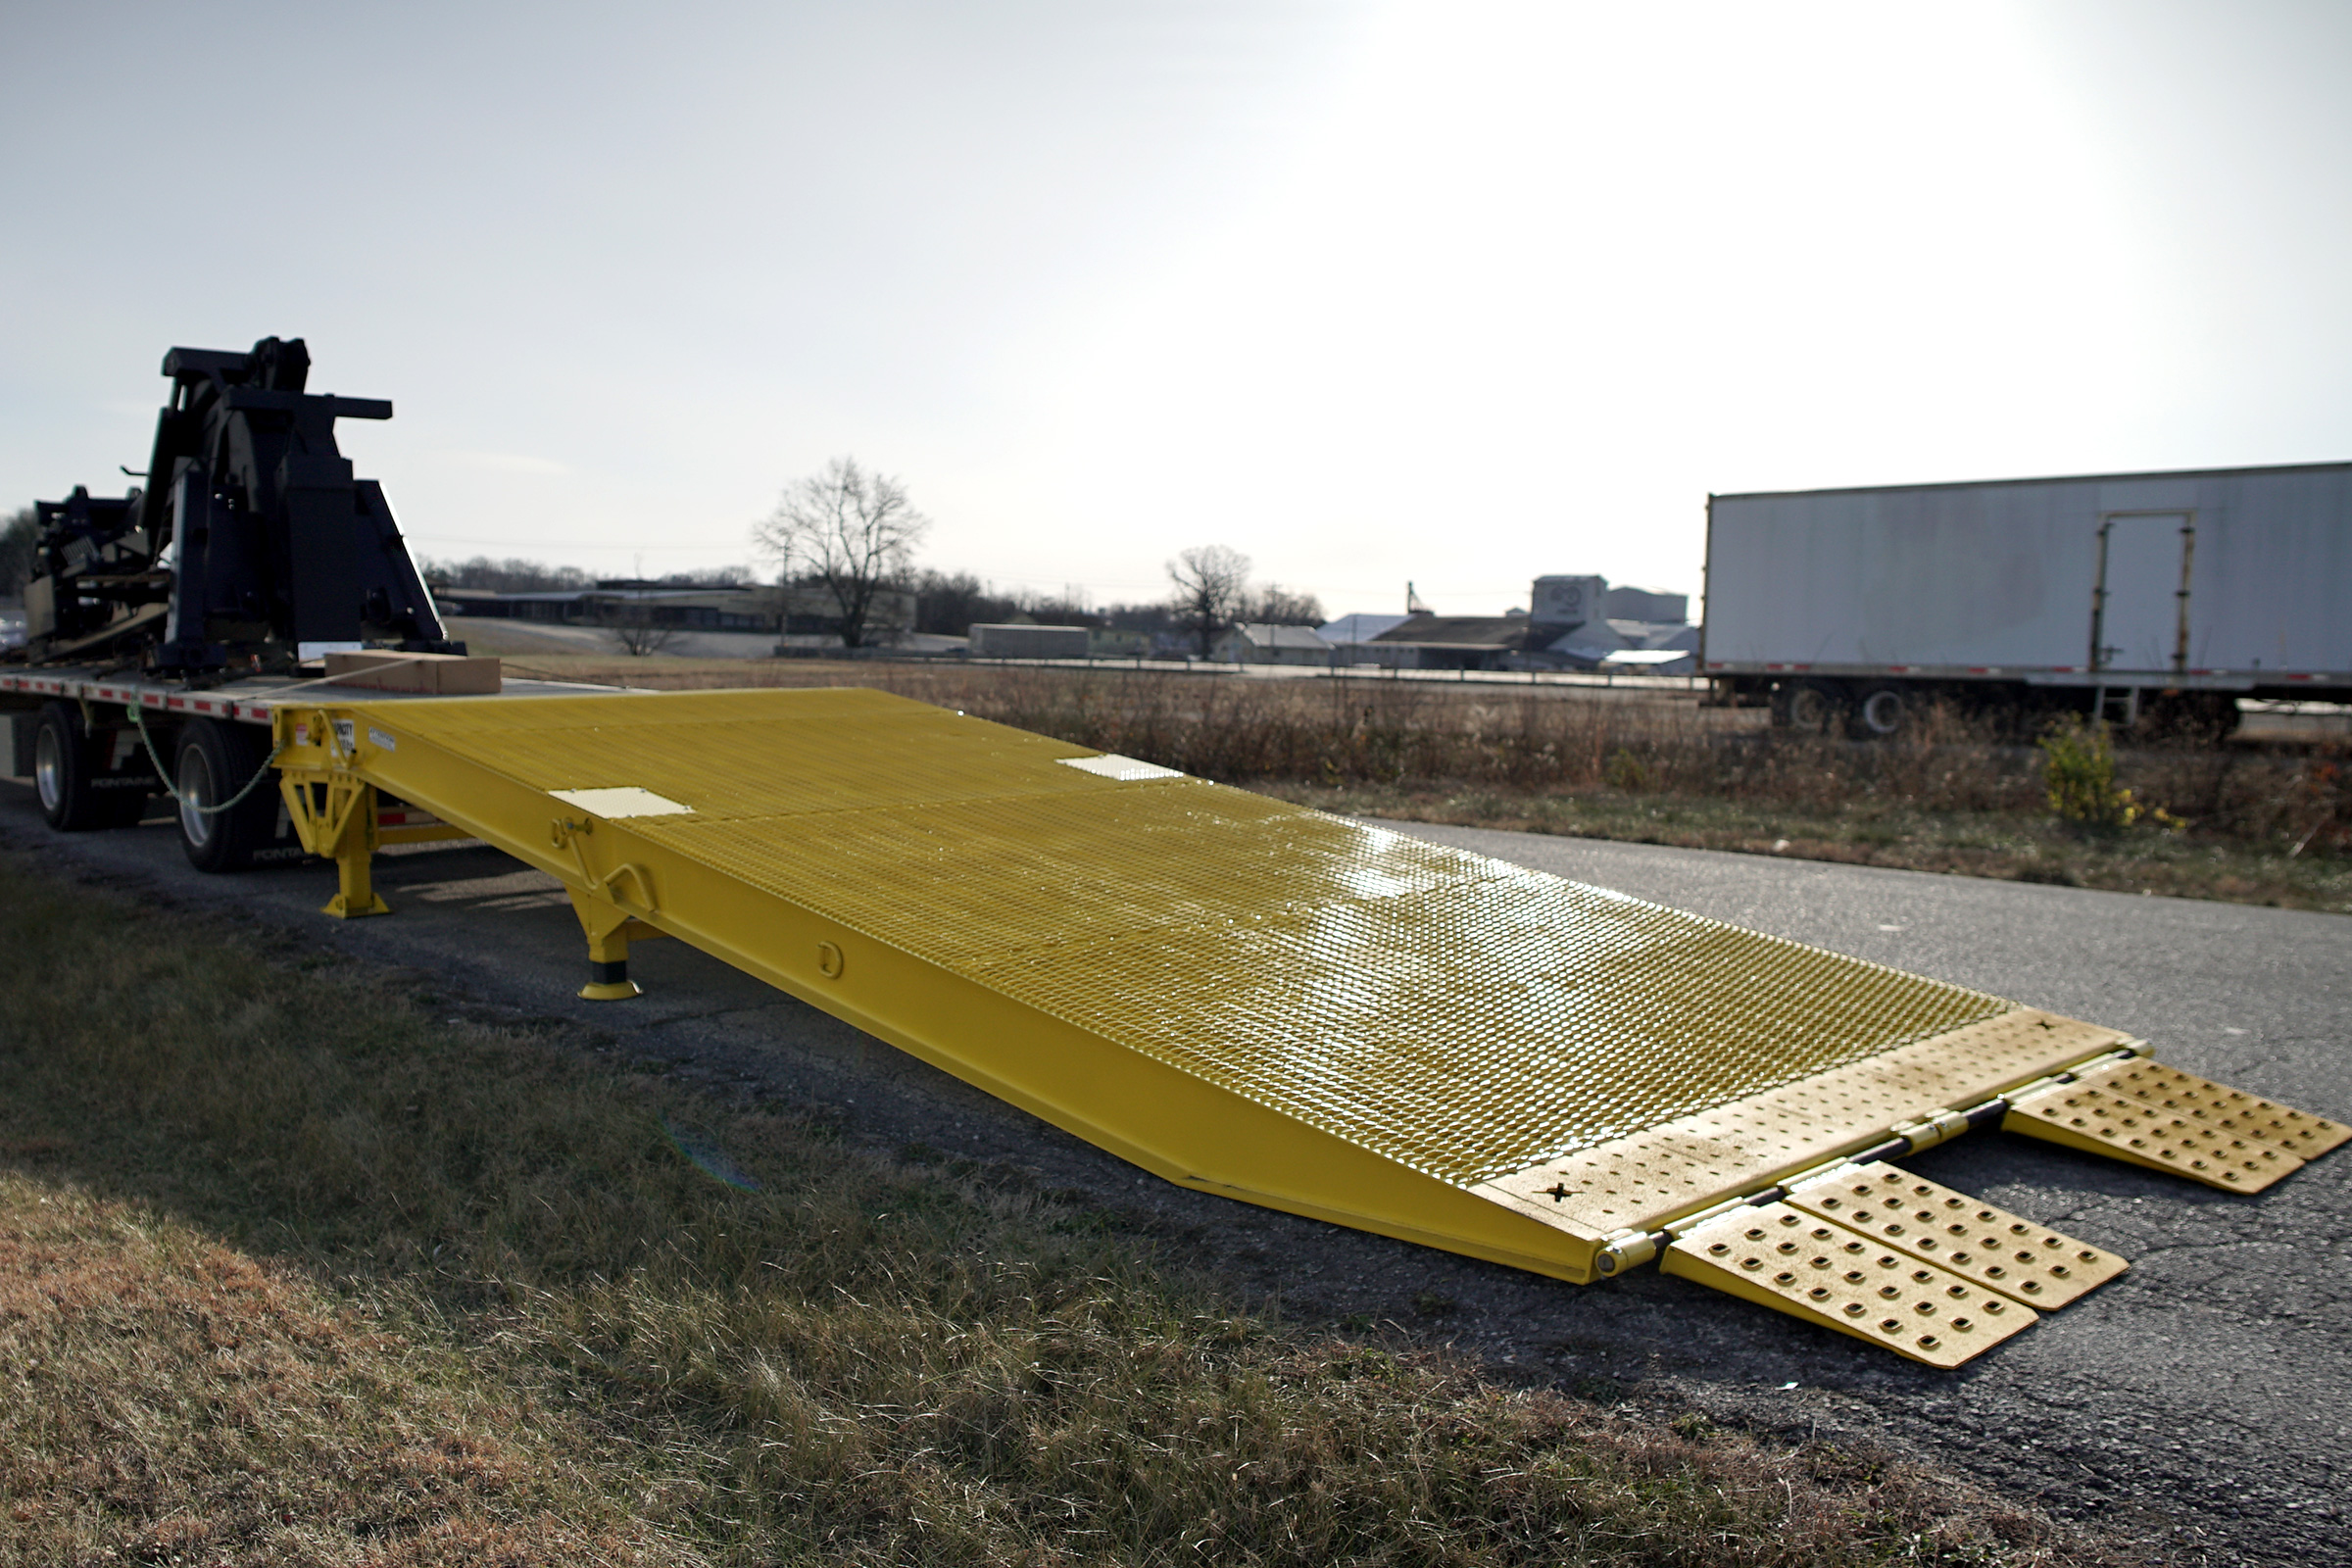 Special Transport Miller The Miller Industries Yard Ramp is perfect for outdoor tradeshows.